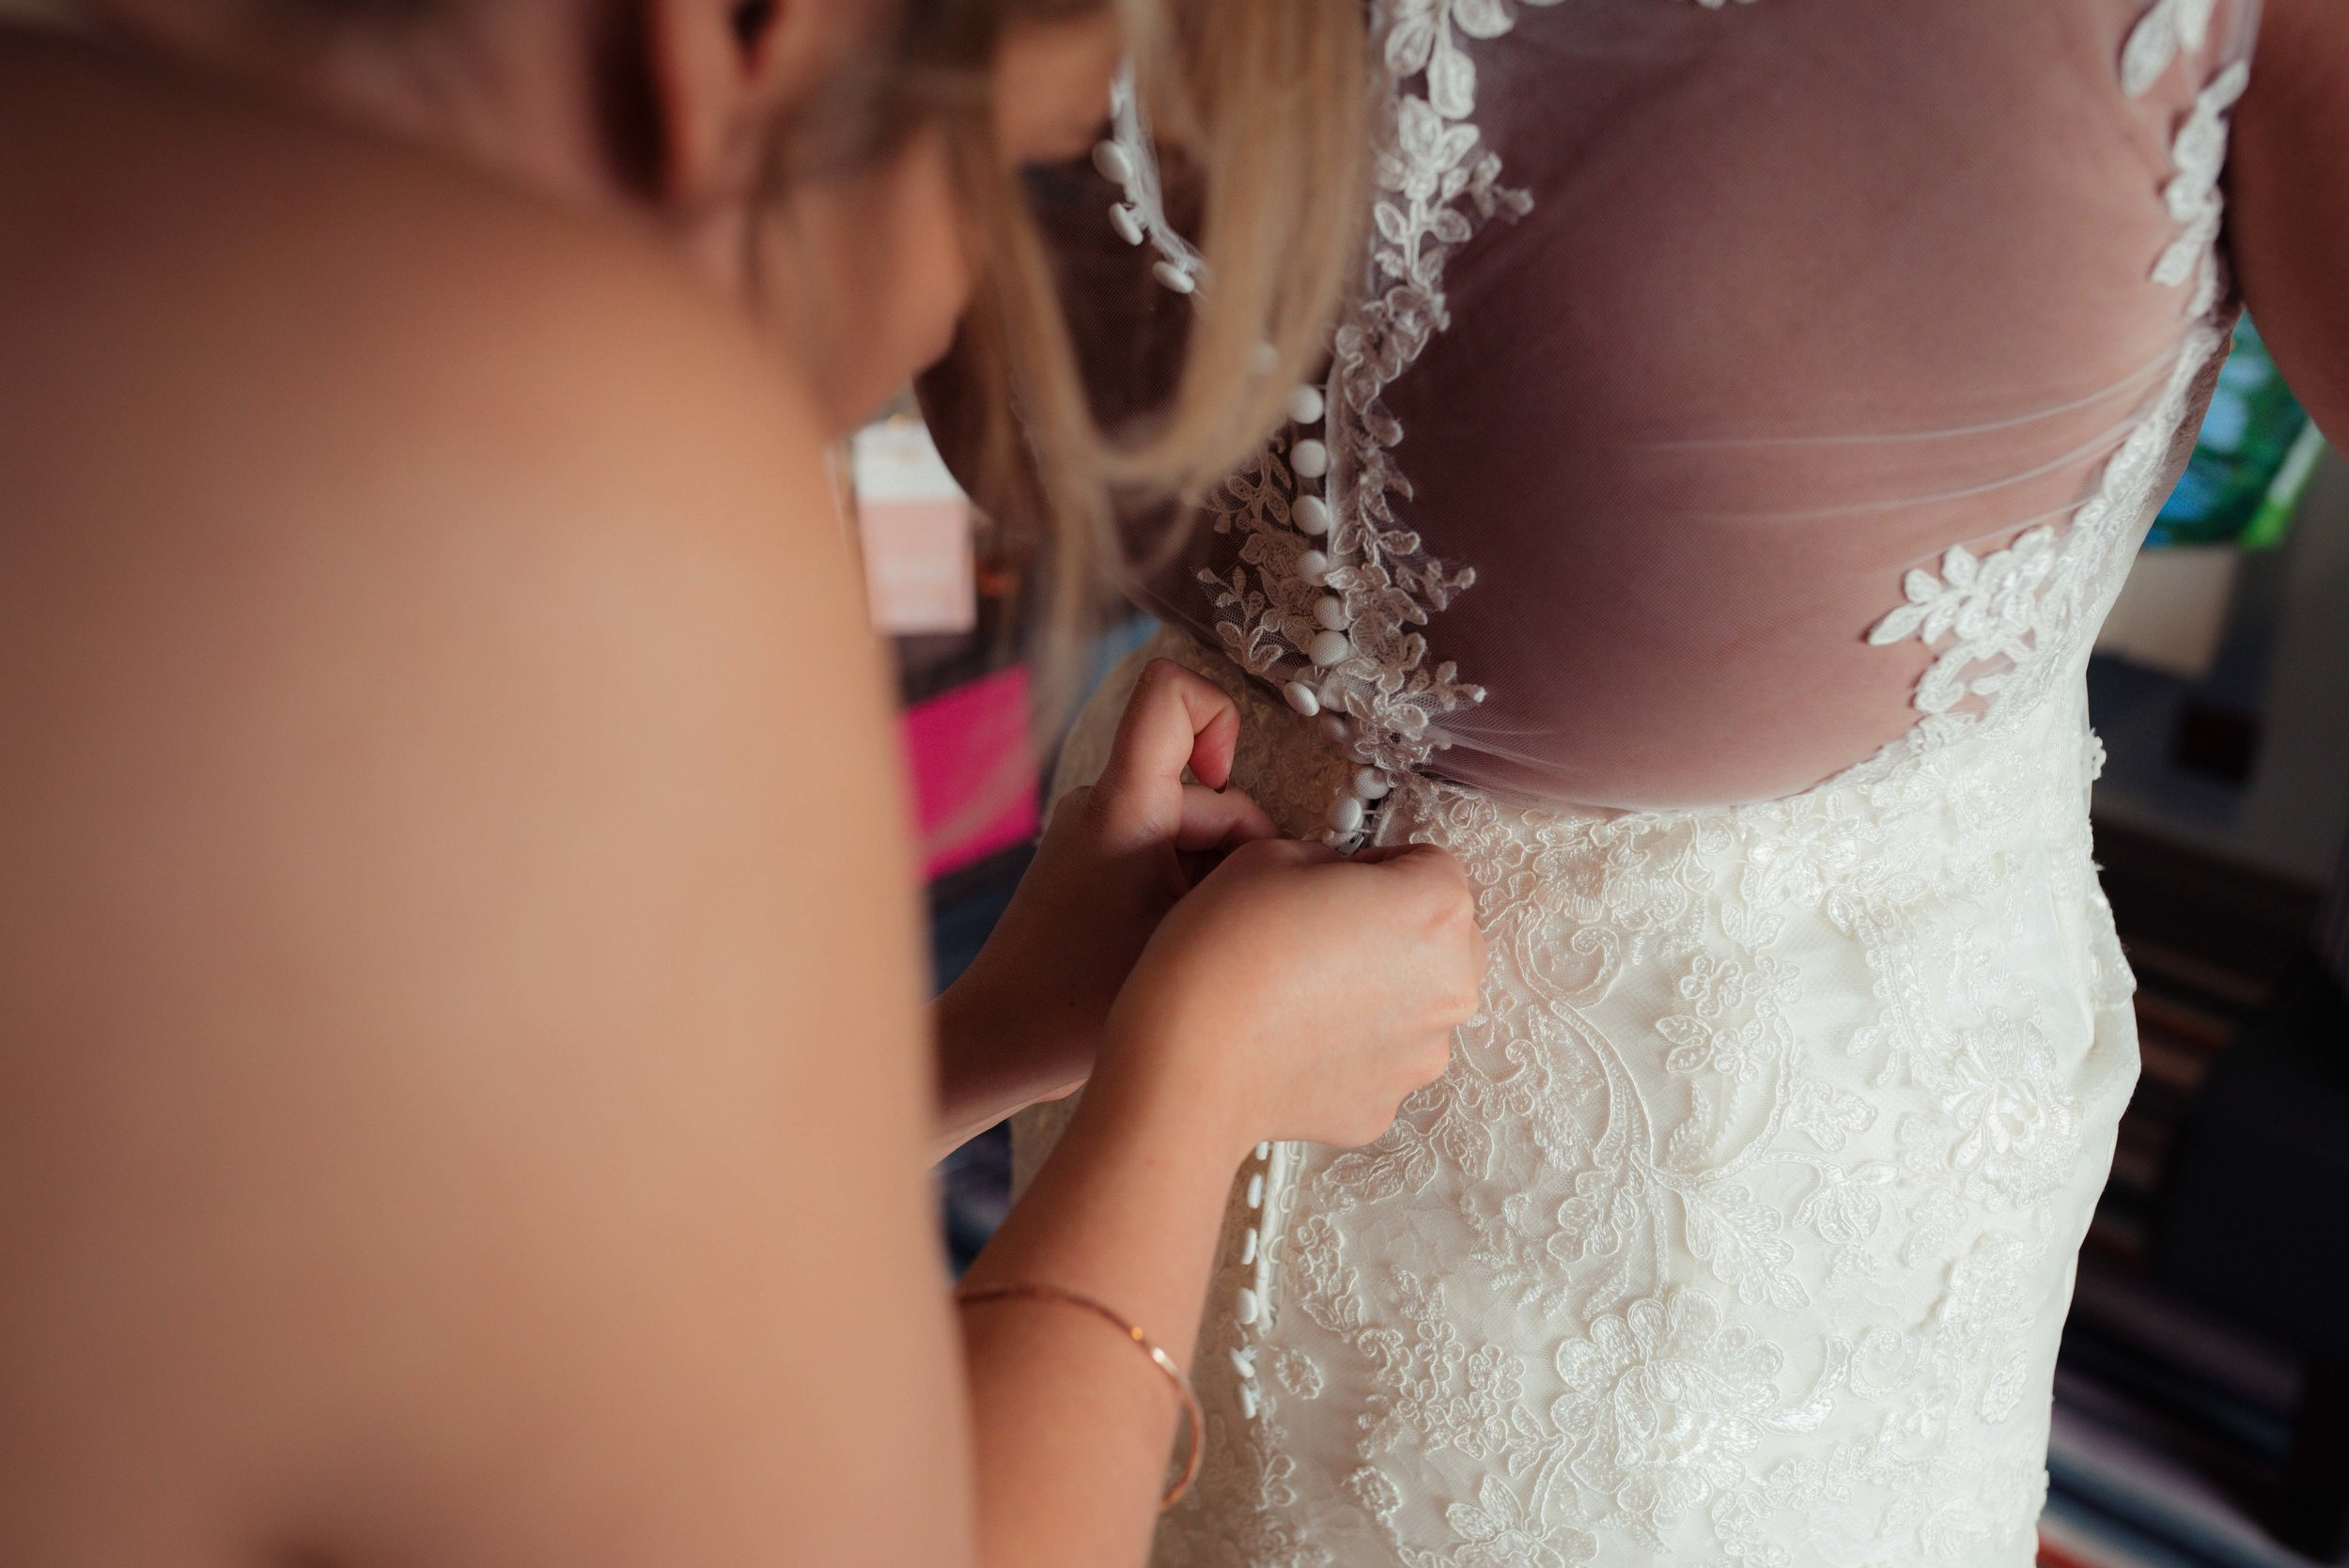 a bridesmaid buttons up the brides stunning lace dress